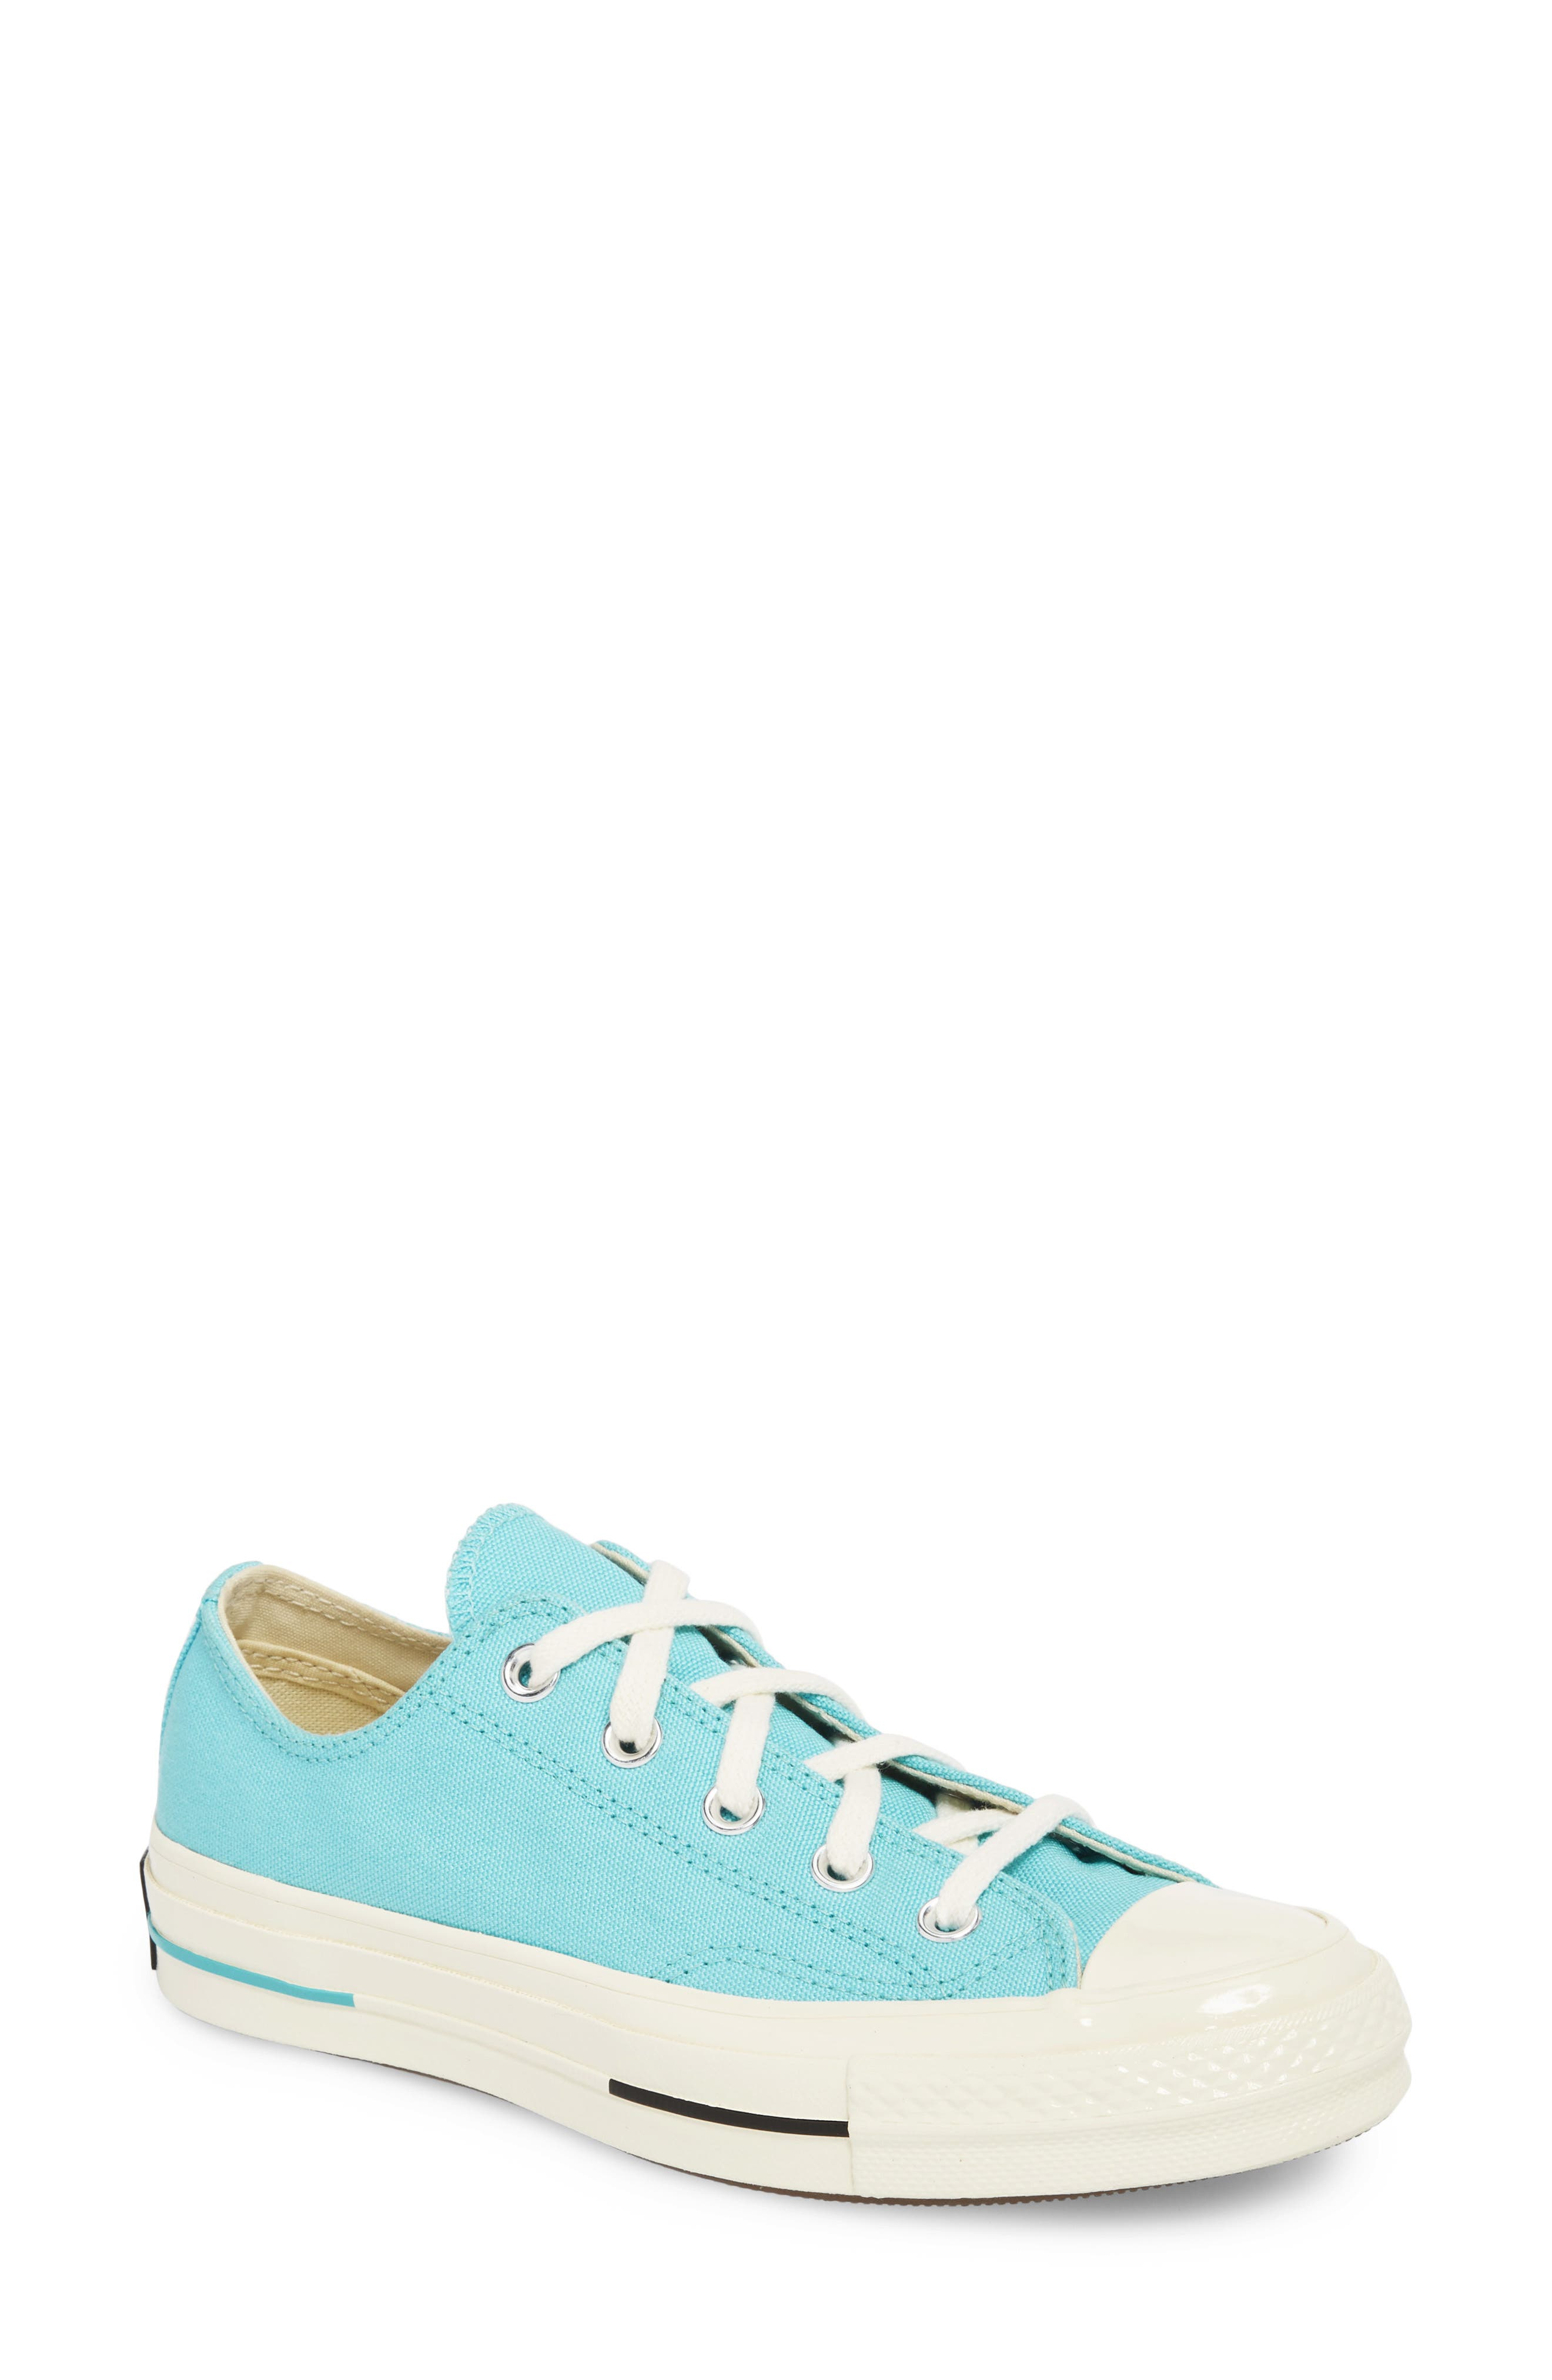 Chuck Taylor<sup>®</sup> All Star<sup>®</sup> '70s Brights Low Top Sneaker,                             Main thumbnail 1, color,                             Bleached Aqua